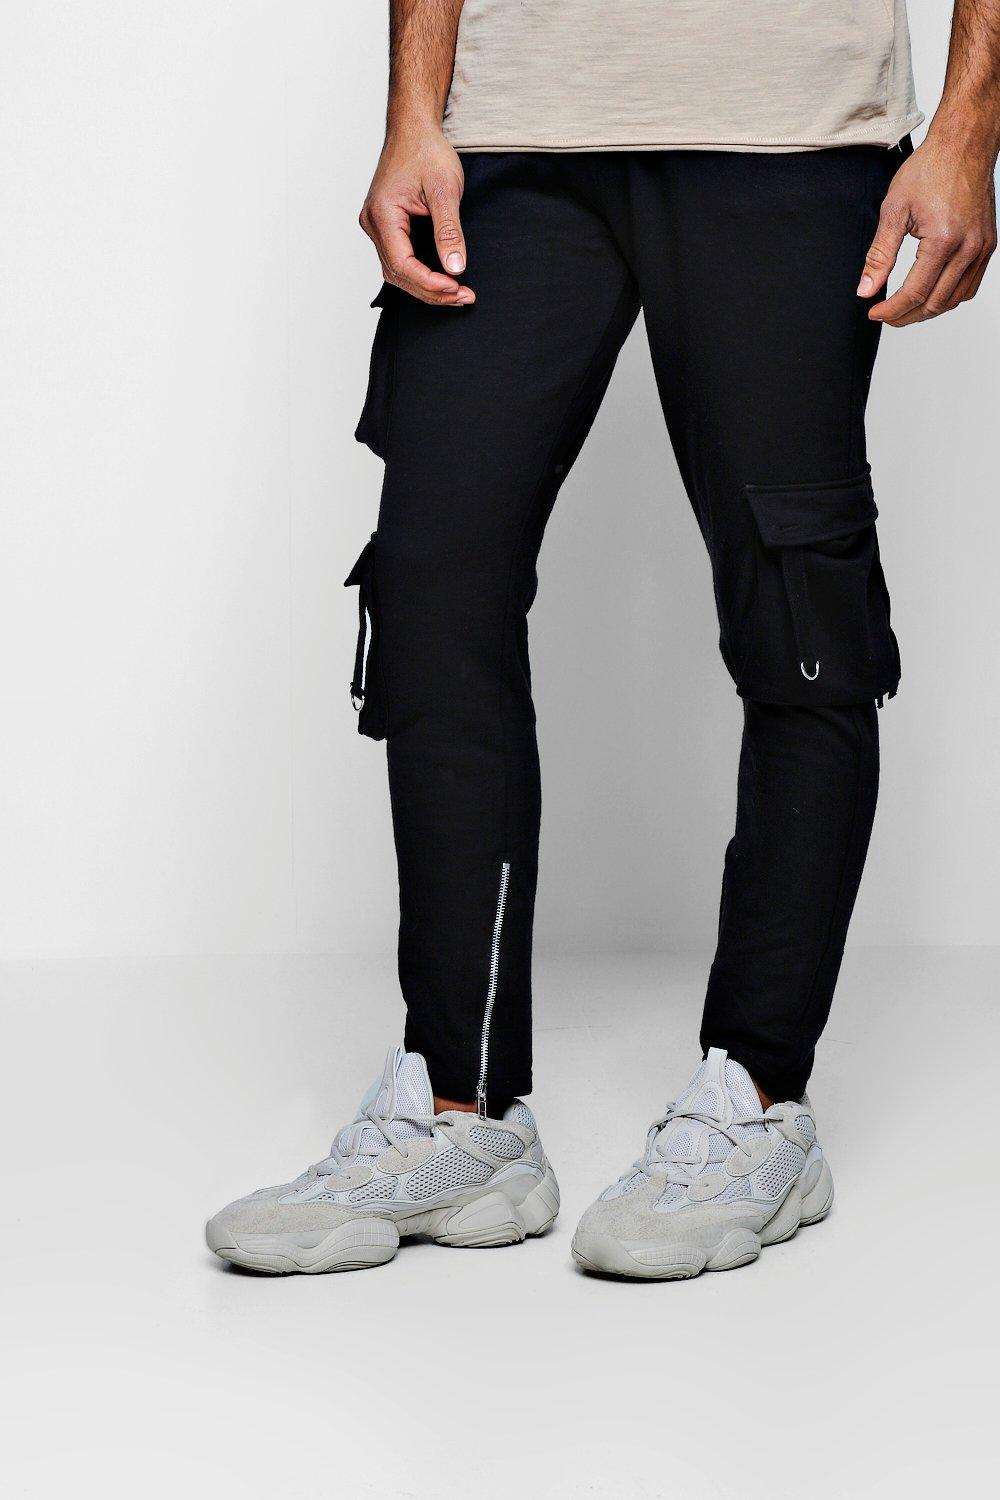 Zips Detail D Jersey Cargo black Joggers And With Ring 0q4xtxwP